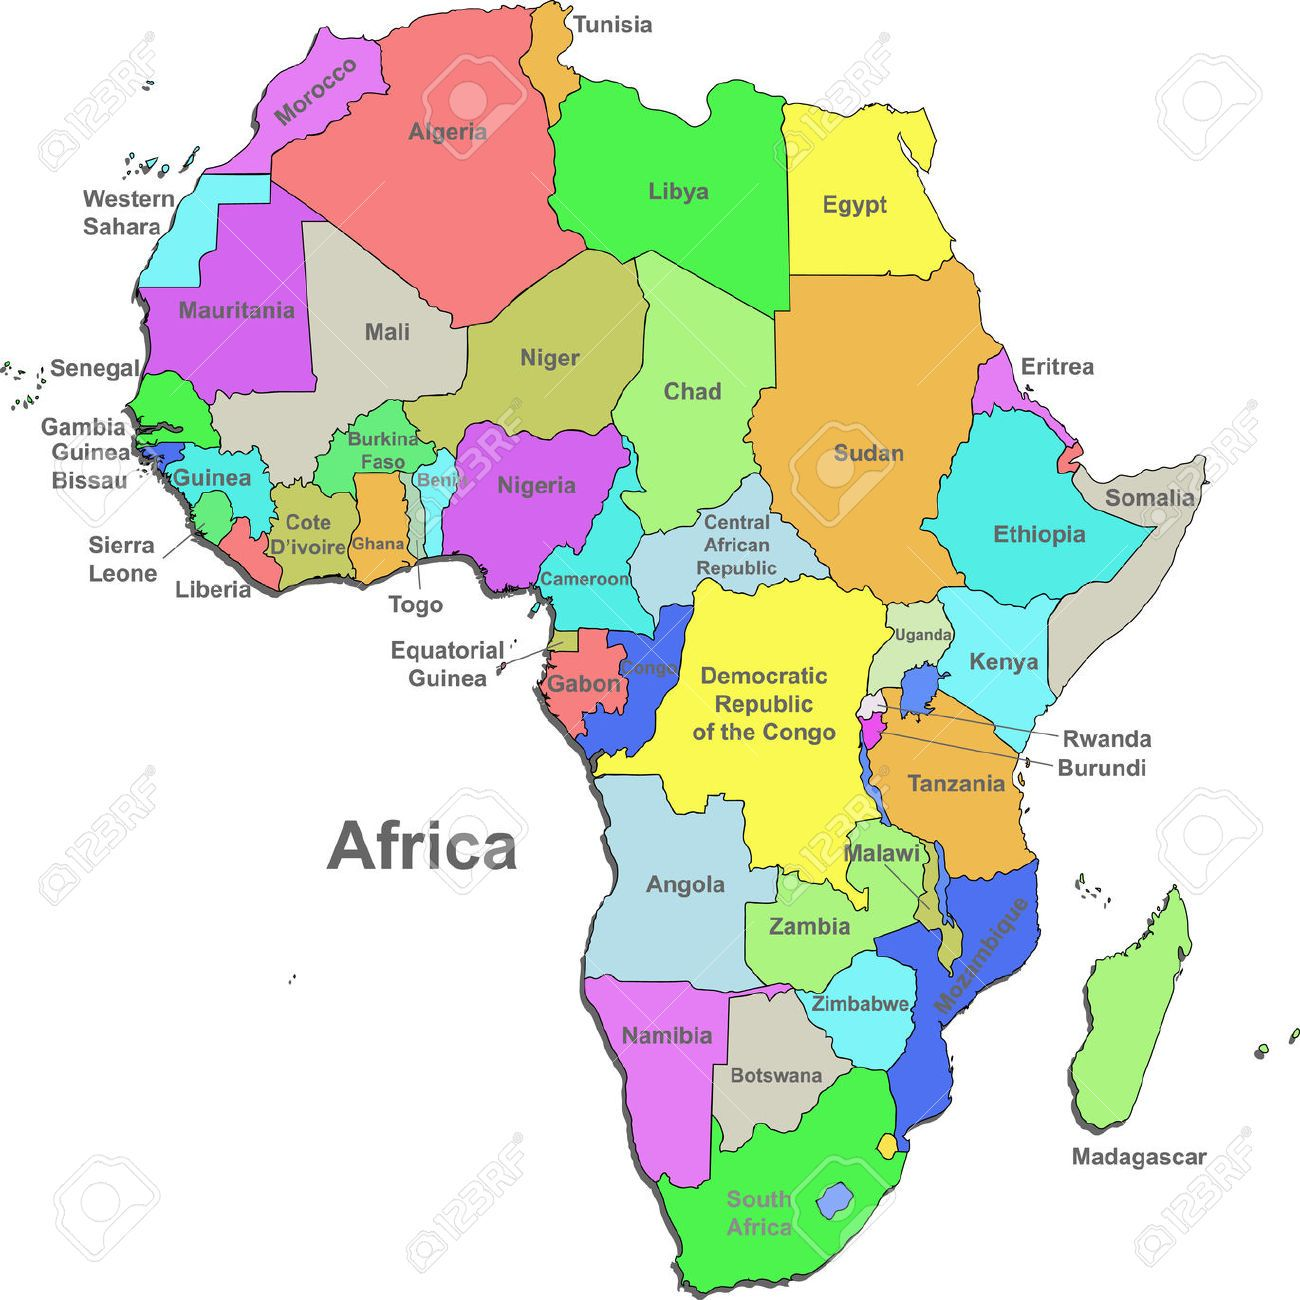 africa map showing all countries